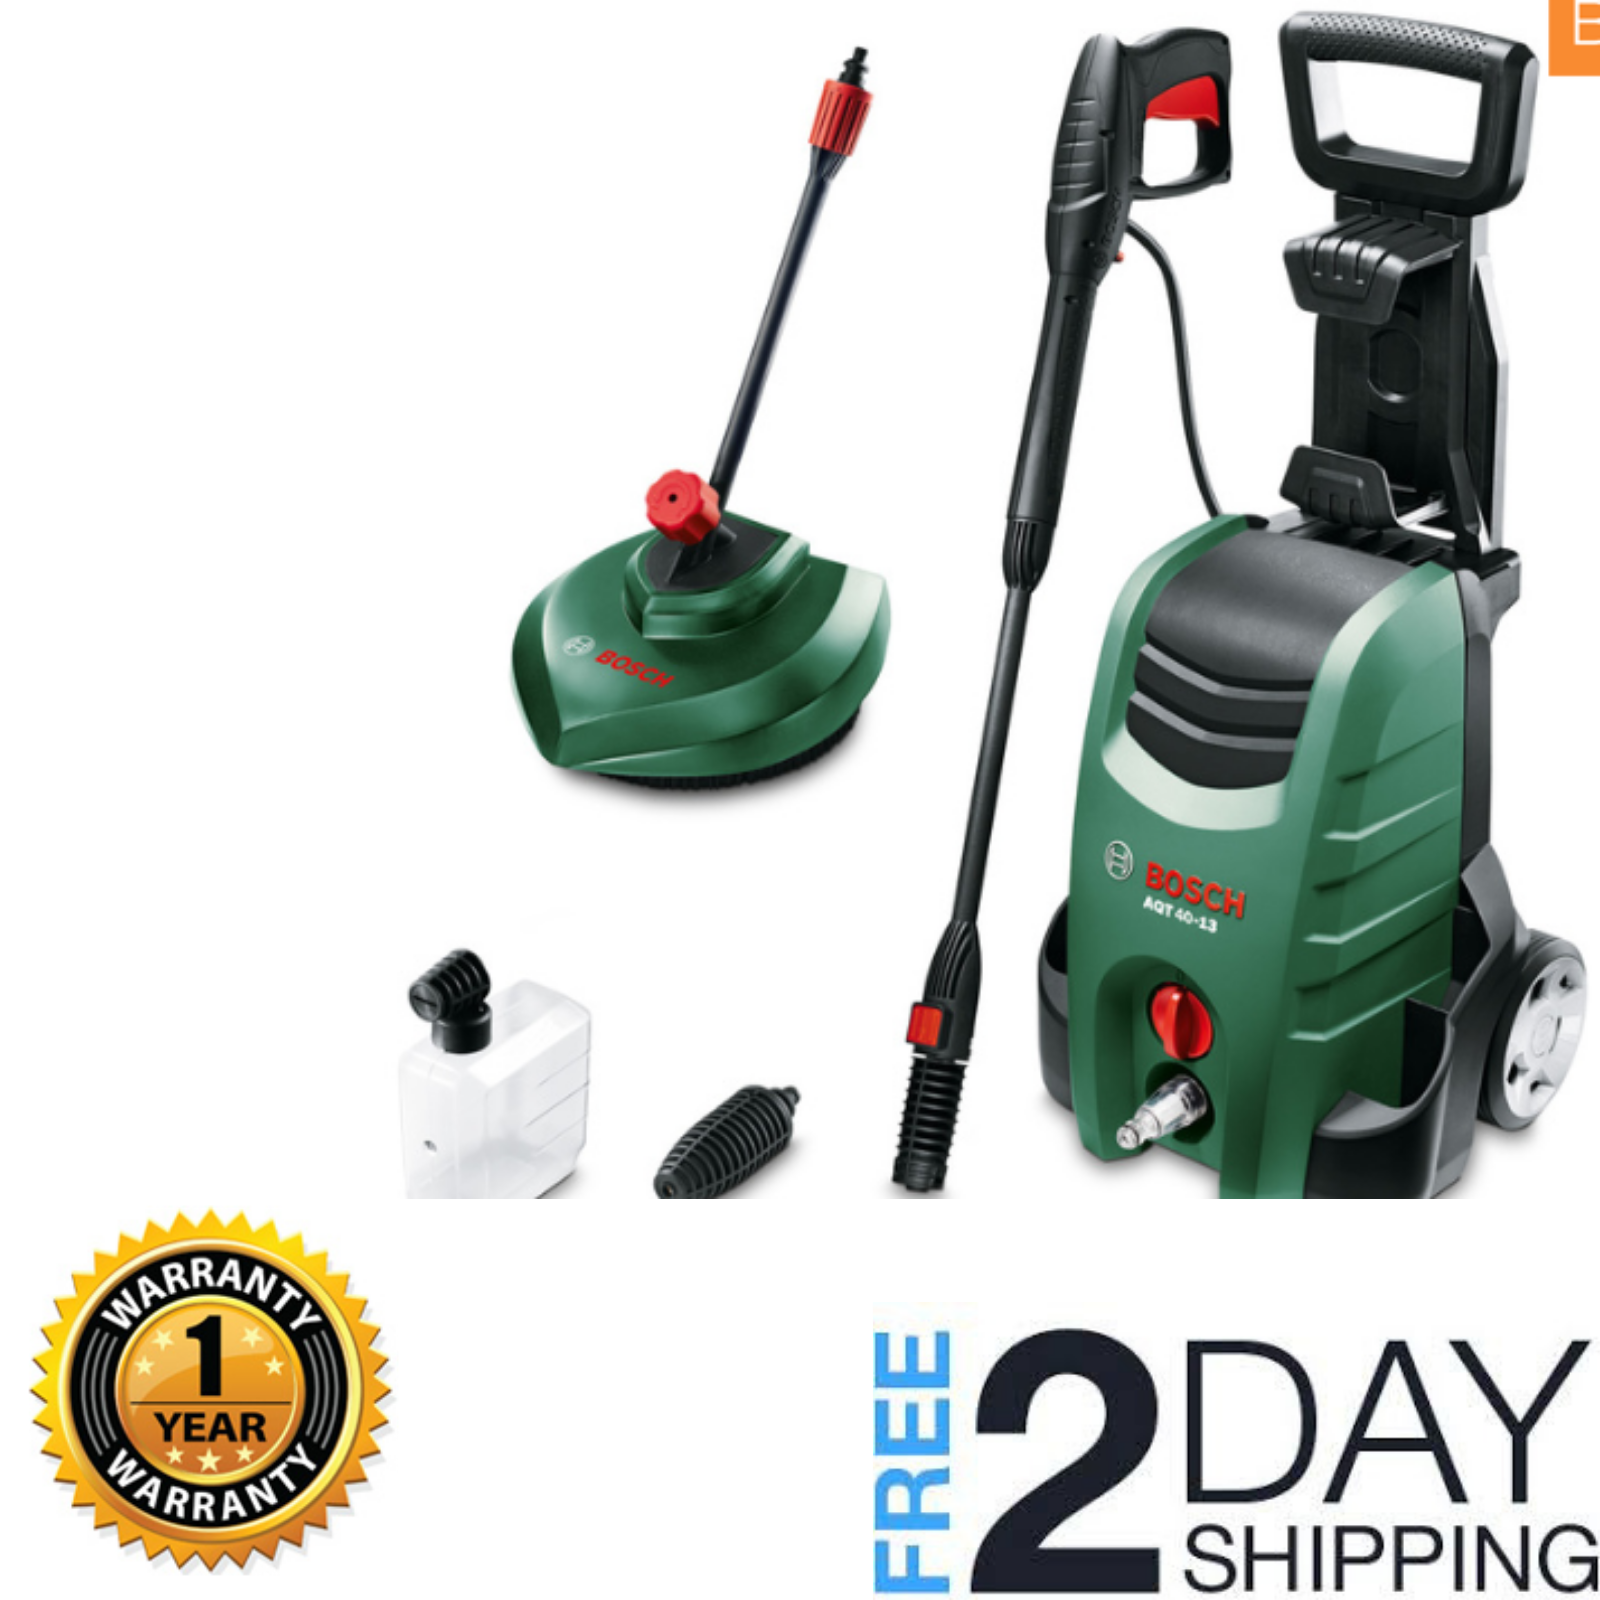 Bosch Aqt 40 13 High Pressure Washer Patio Cleaner Jet Nozzle For Quick Cleaning 3165140716802 Ebay Pressure Washer Quick Cleaning Bosch